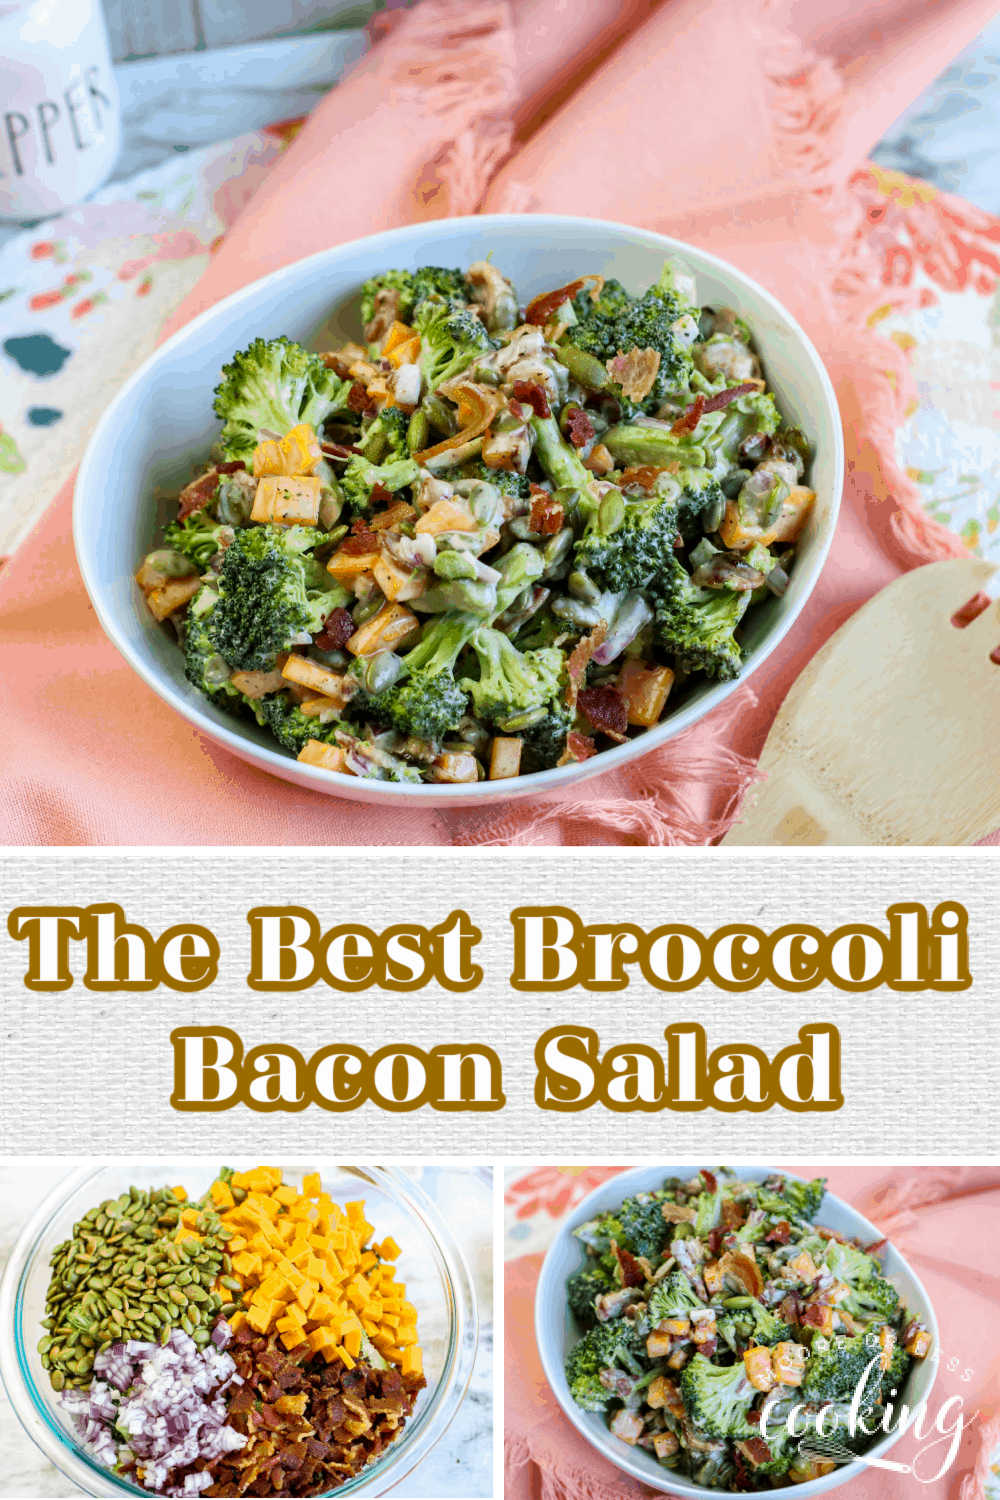 This is the Best Broccoli Bacon Salad ever! Fresh ingredients make this best broccoli salad perfect as a main course or side salad for any meal. It's keto/low carb too! via @Mooreorlesscook